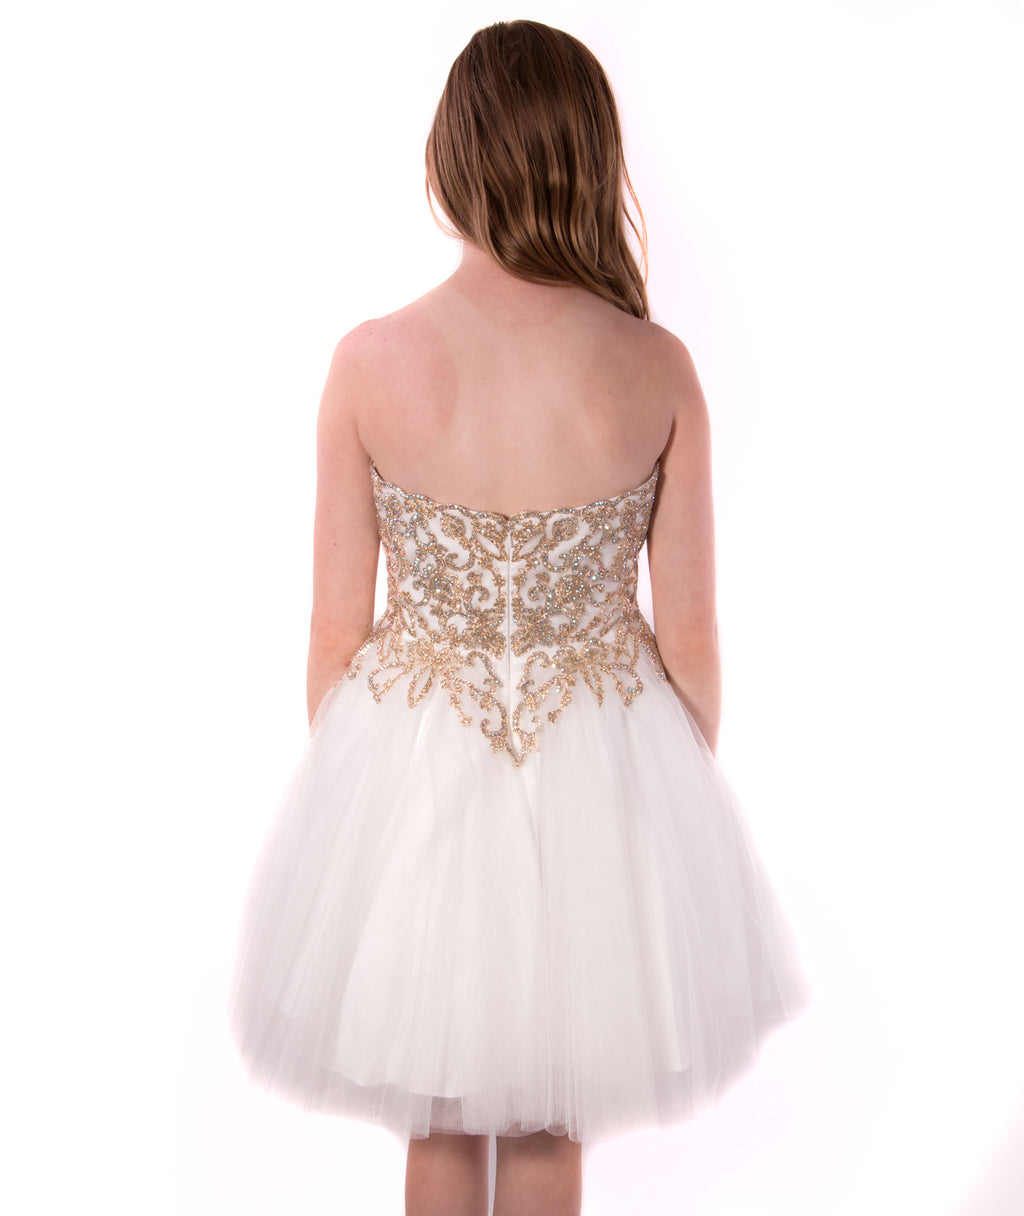 Jovani Girls Ivory and Gold Strapless Dress